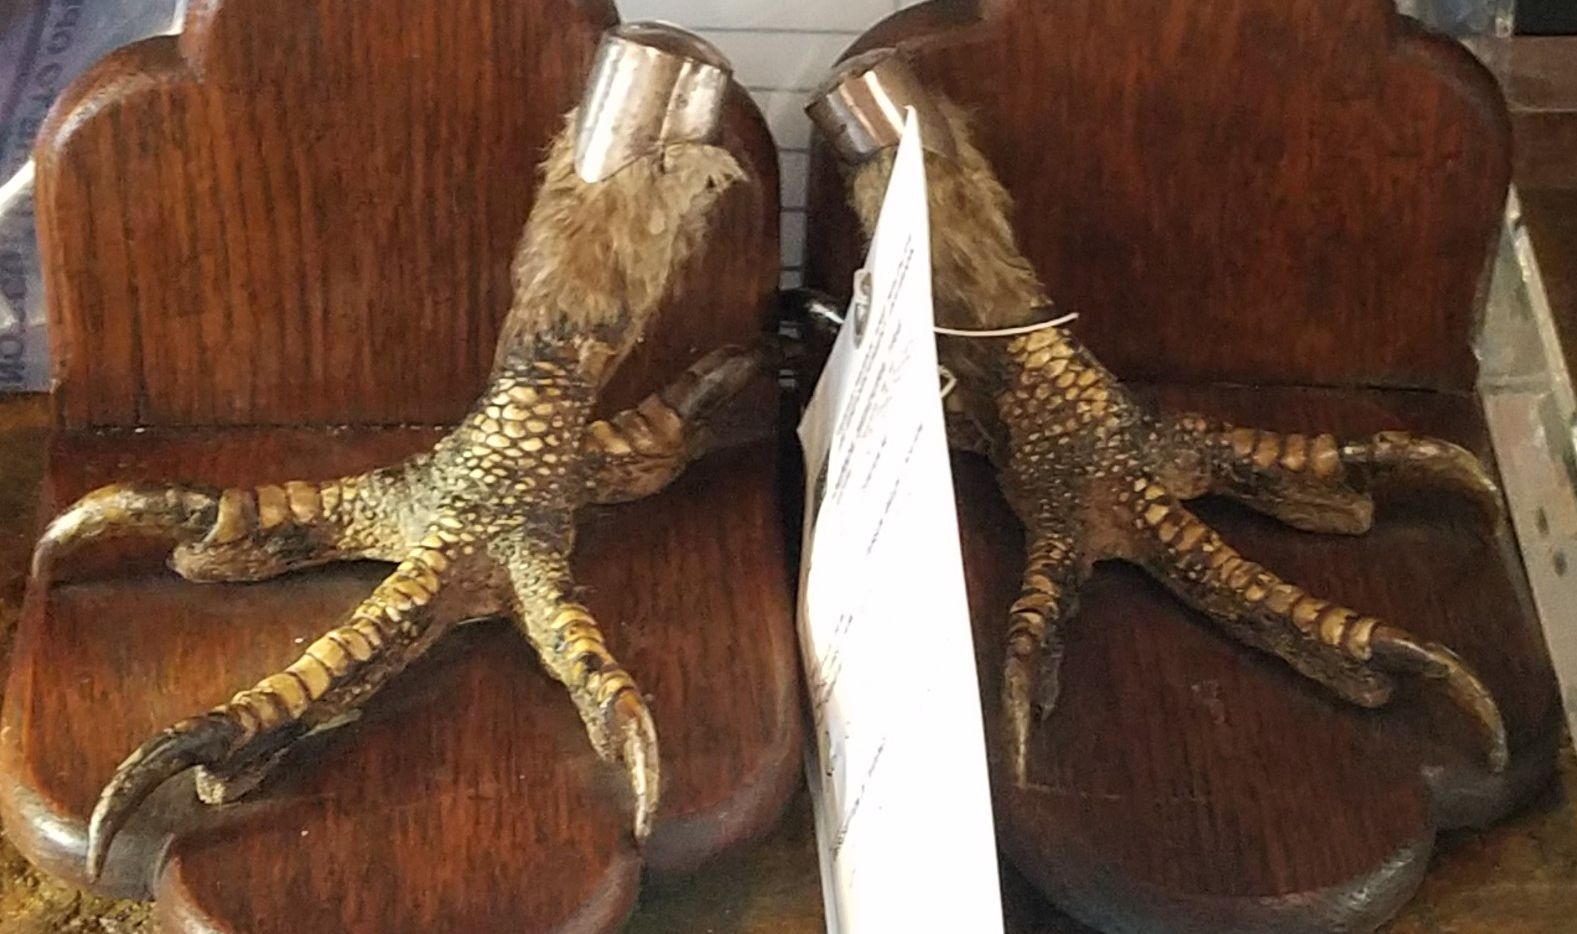 Raptor talons that were found up for sale on internet forums and online marketplaces. Texas Game Wardens cracked down on the sale of such items this week in Dallas-Fort Worth.